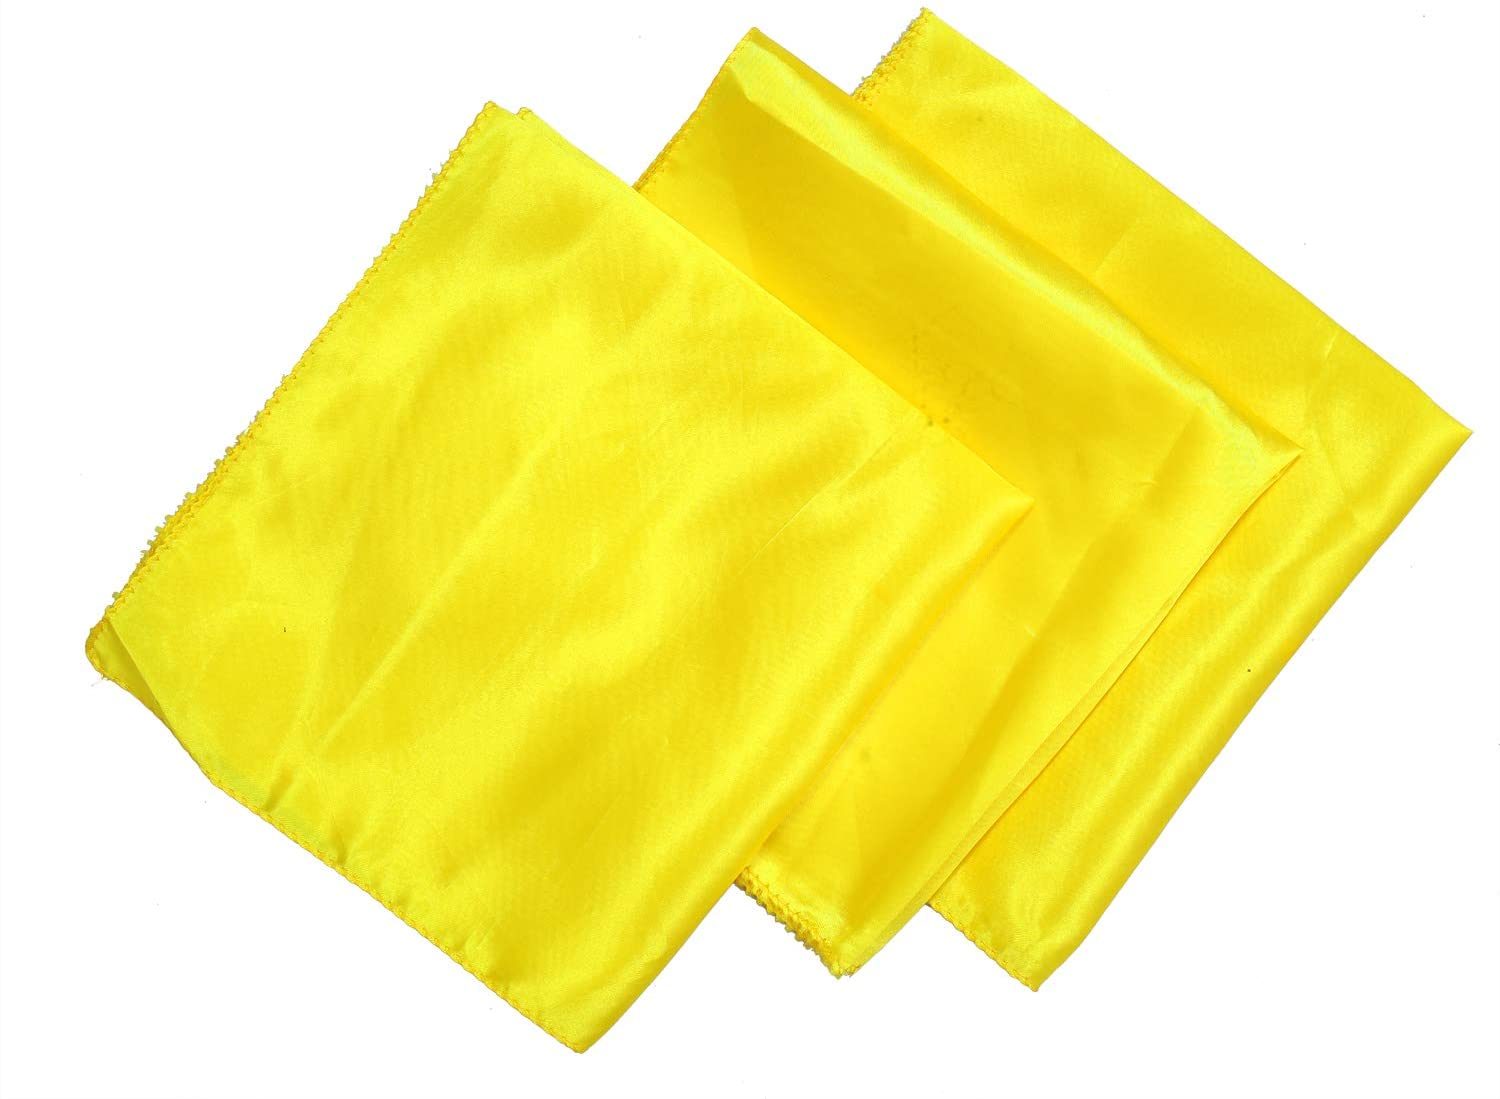 VDS Table Cloth Napkins Square Satin Dinner Napkins for Wedding Banquet Restaurants Table Decoration(12 X 12 Inch) (Pack of 25) - Yellow